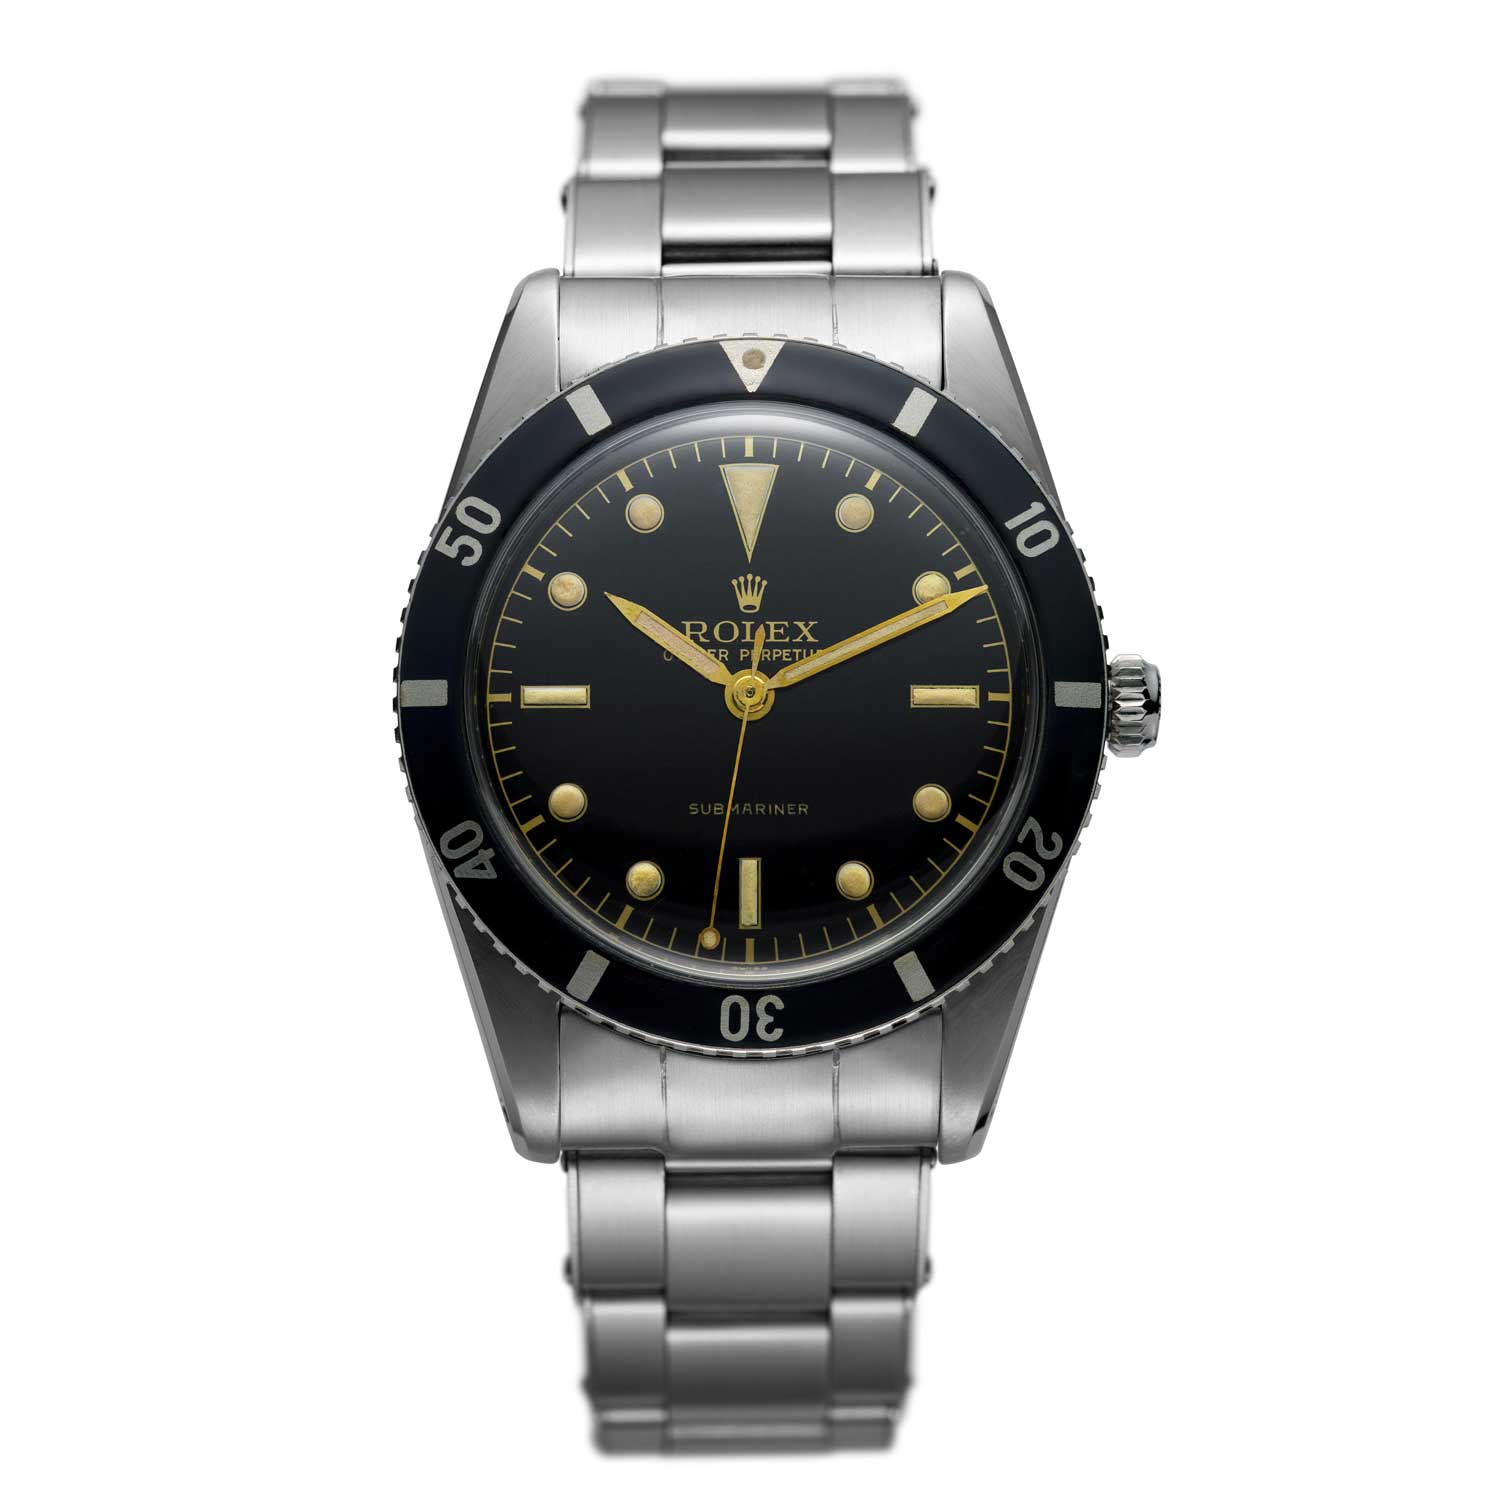 The Rolex Submariner from 1953 comes with curved end lugs that give the watch a look akin to that of an integrated timepiece